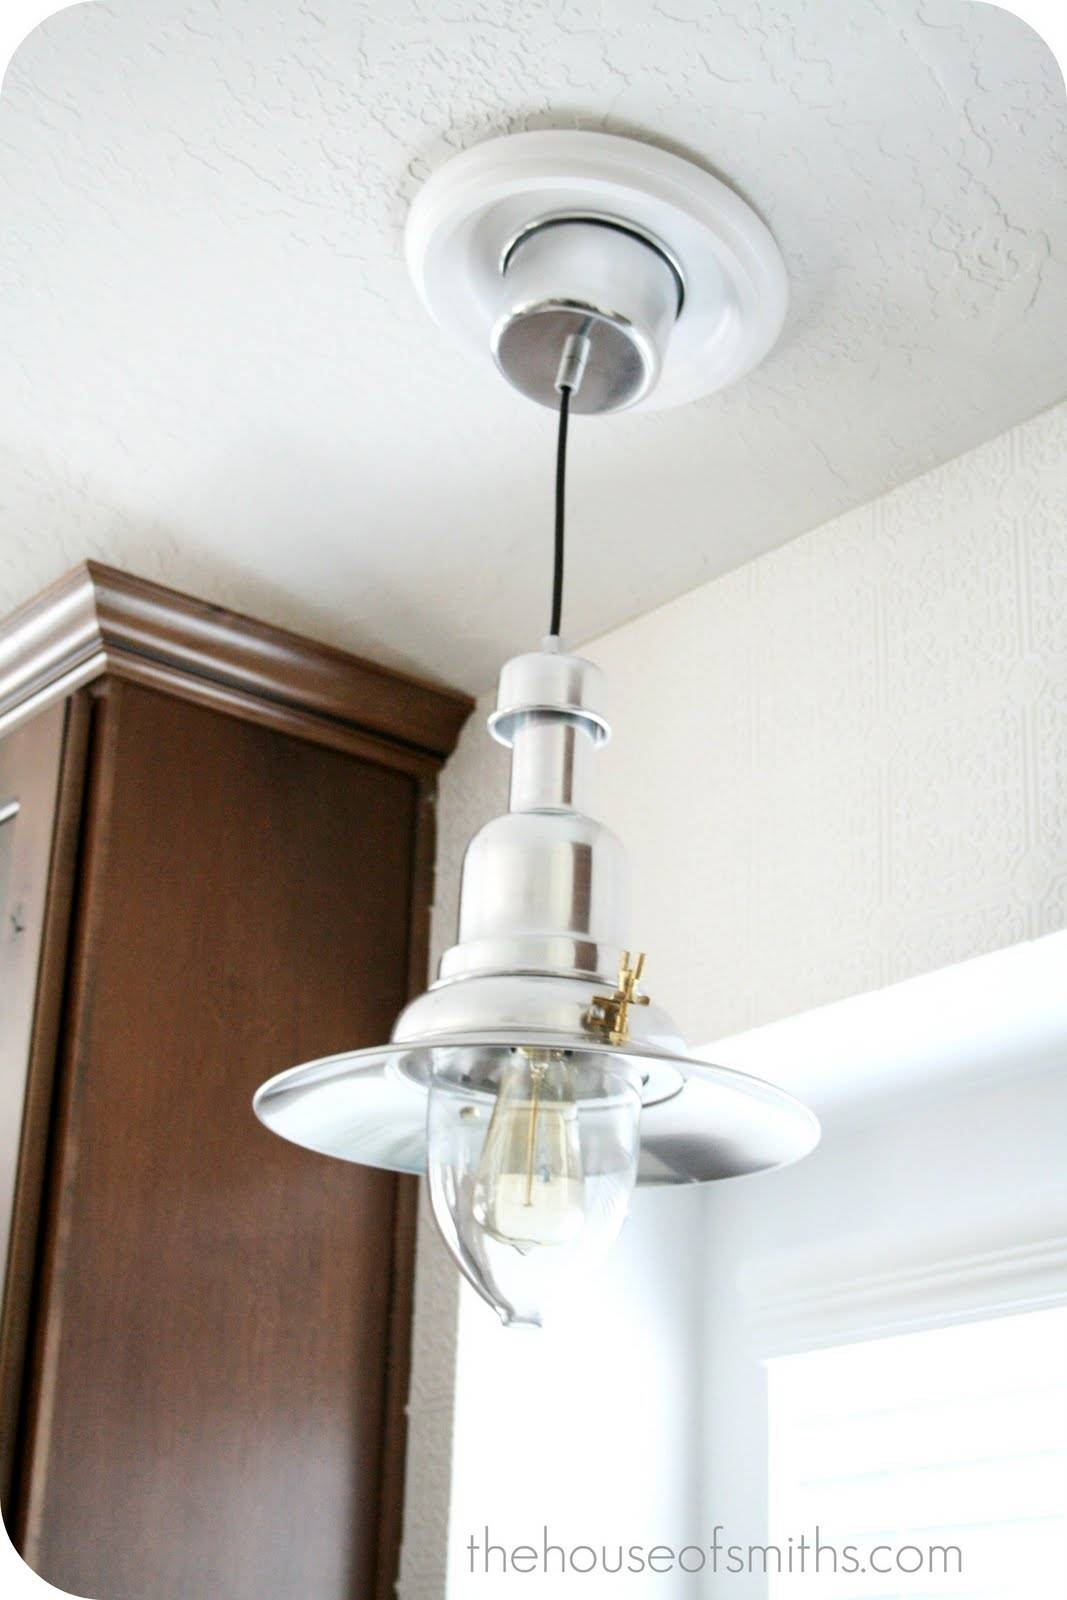 New Kitchen Lighting – Converting A Can Light With A Recessed For Ikea Recessed Lighting (View 11 of 15)